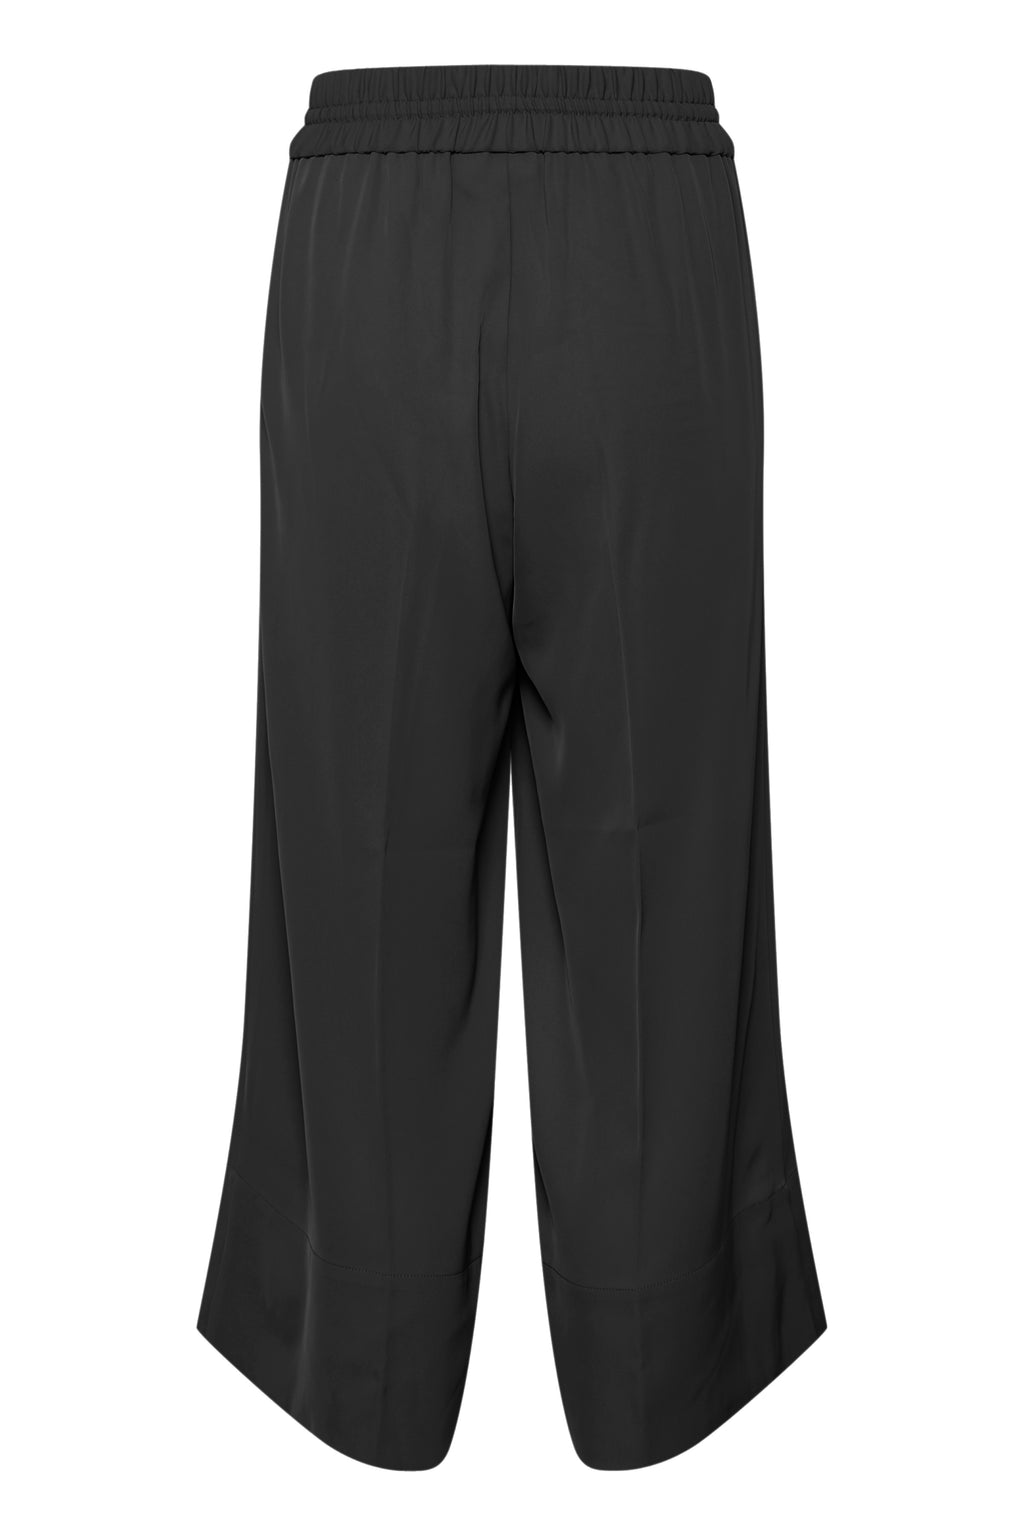 In Wear Quiana Culotte Pant - Black